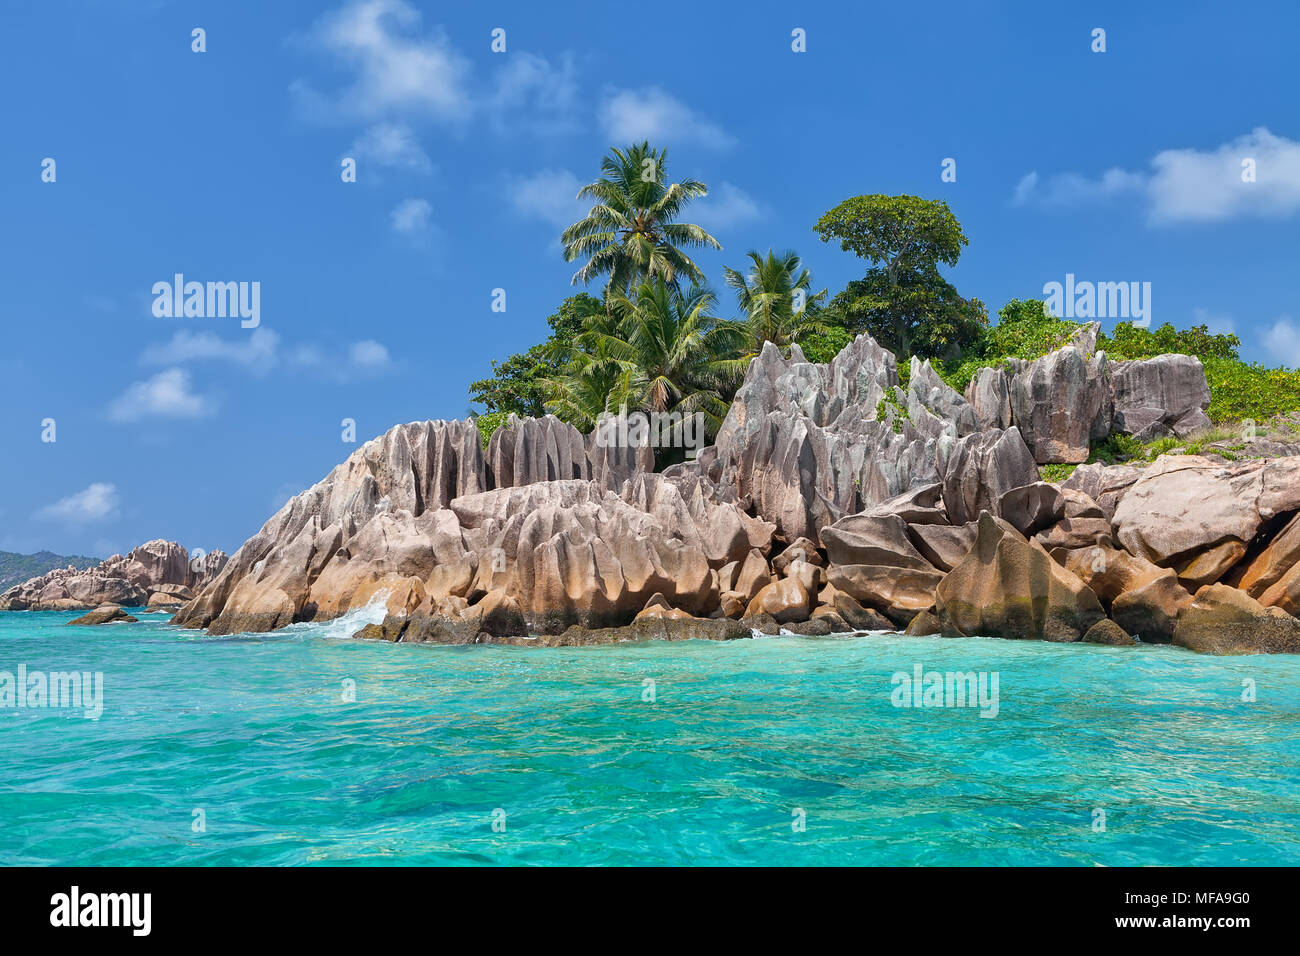 Beautiful tropical St. Pierre Island, Seychelles - Stock Image